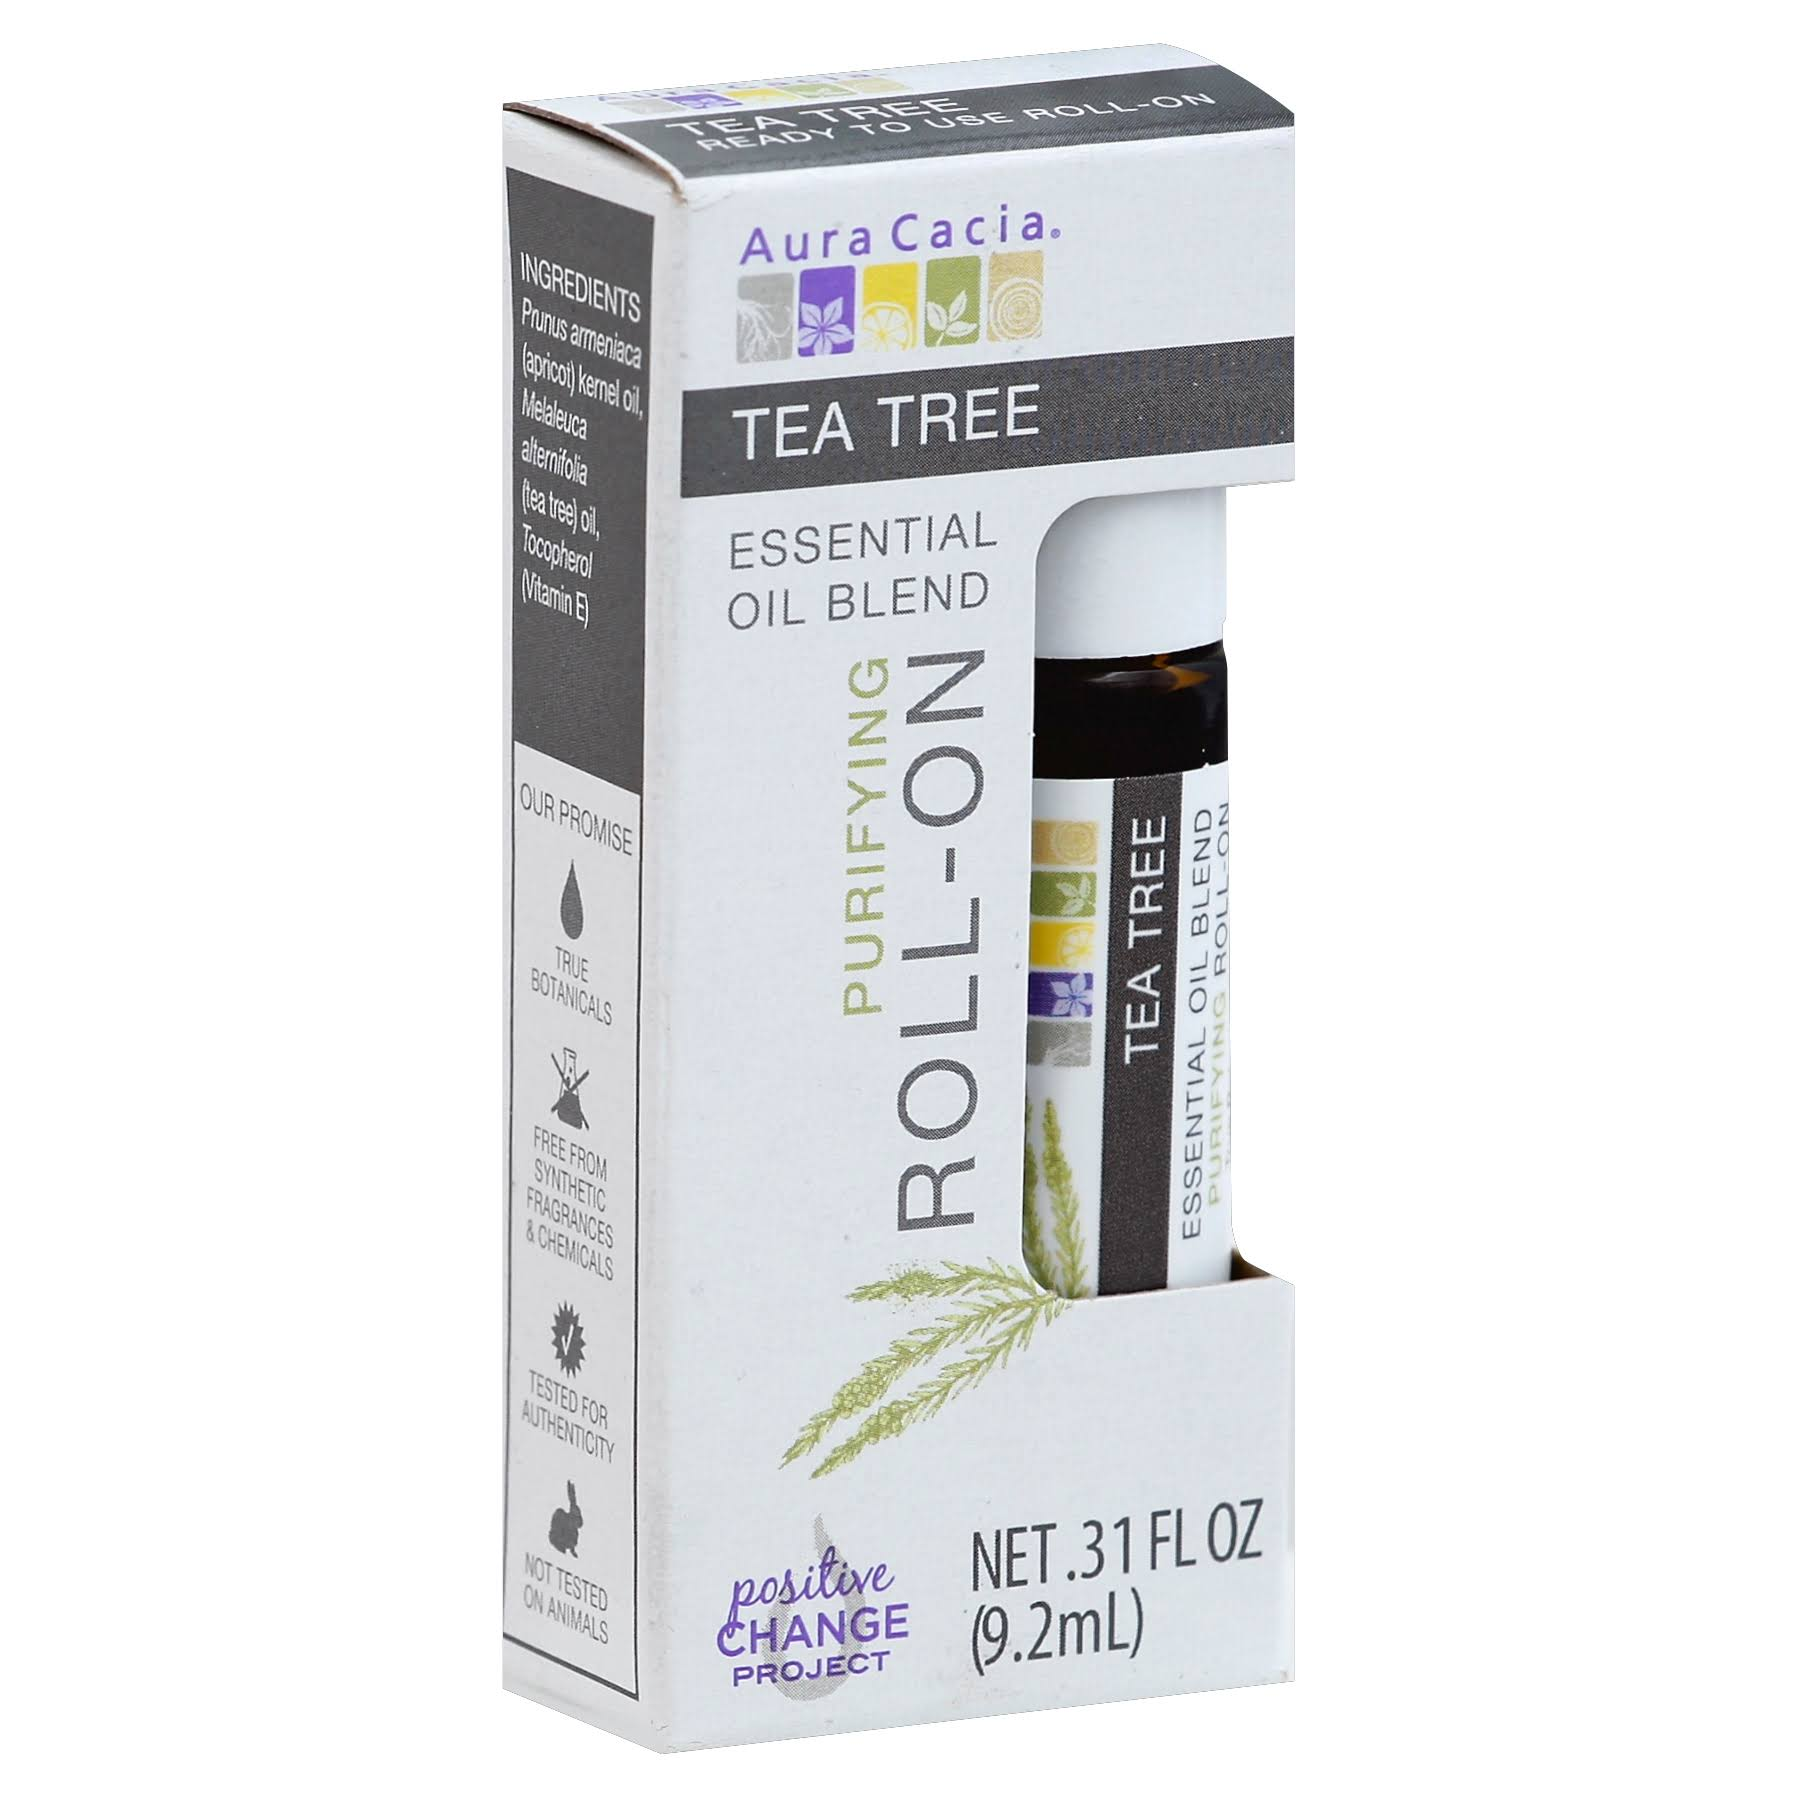 Aura Cacia Essential Oil Blend Roll On - Tea Tree, 9.2ml